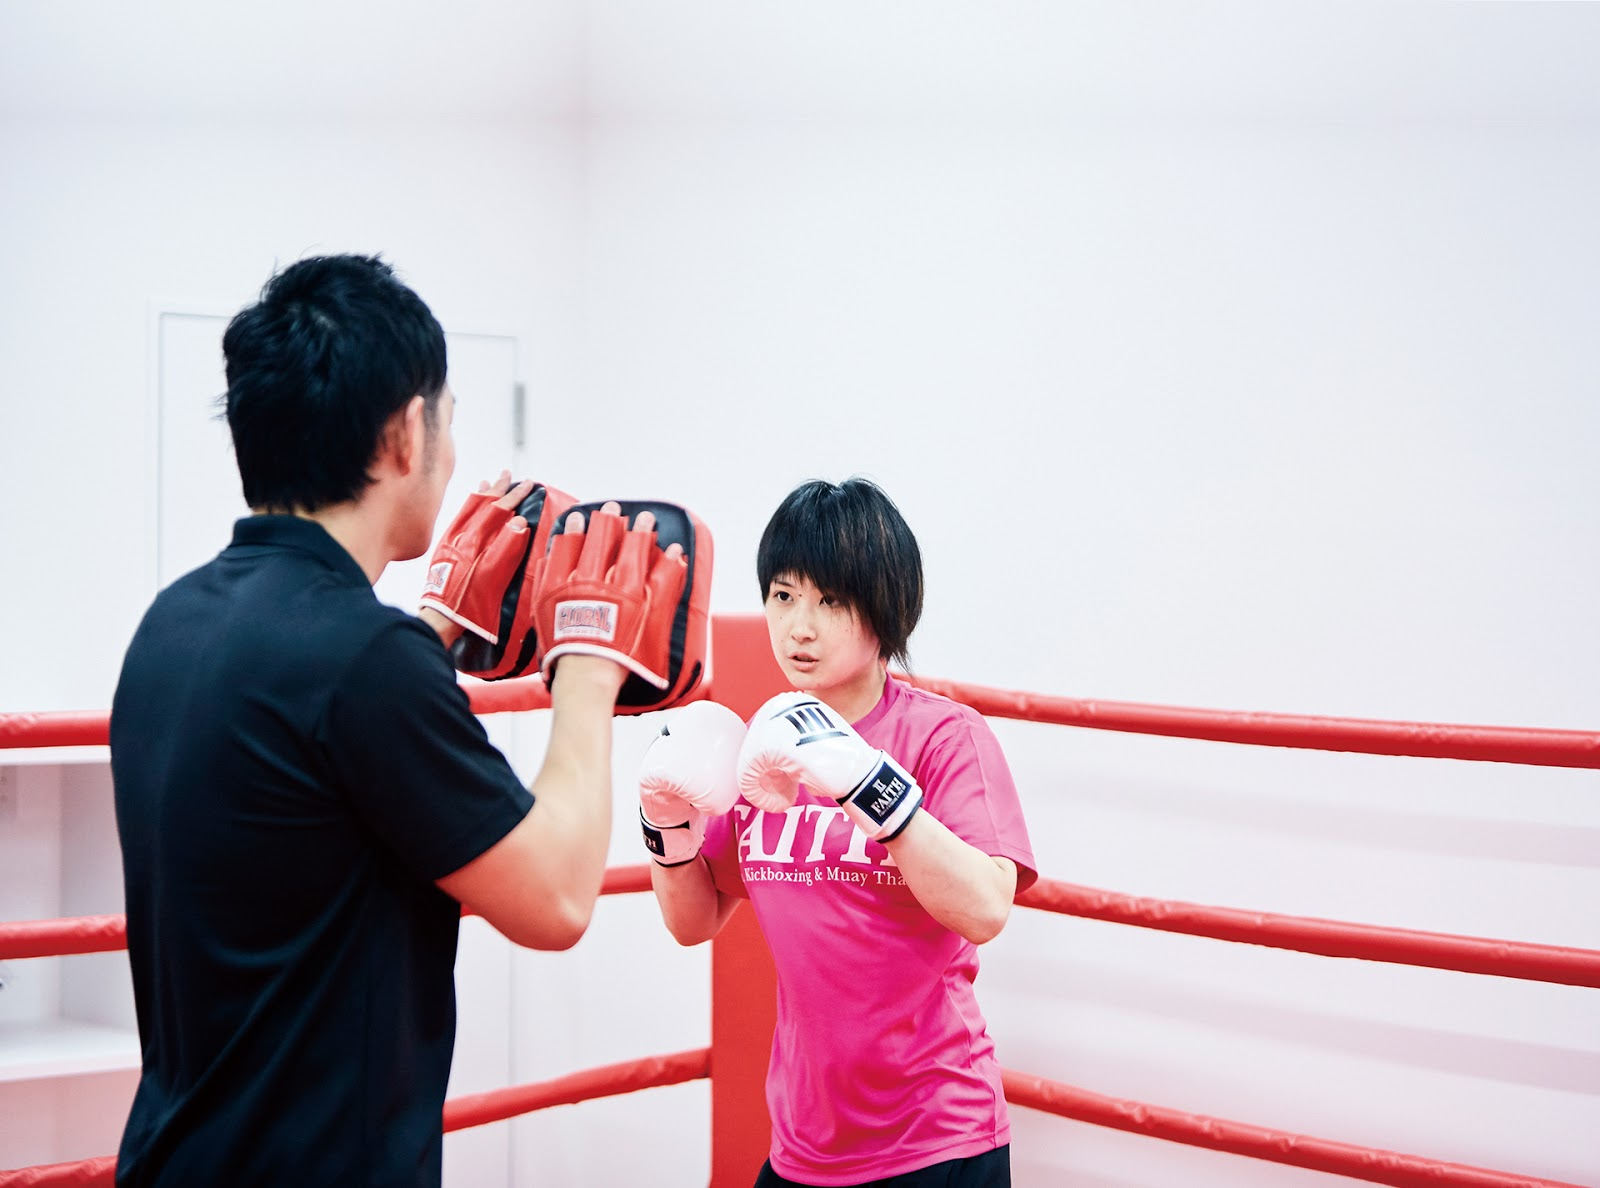 FAITH - Fitness, Kickboxing & Muay Thaiにて